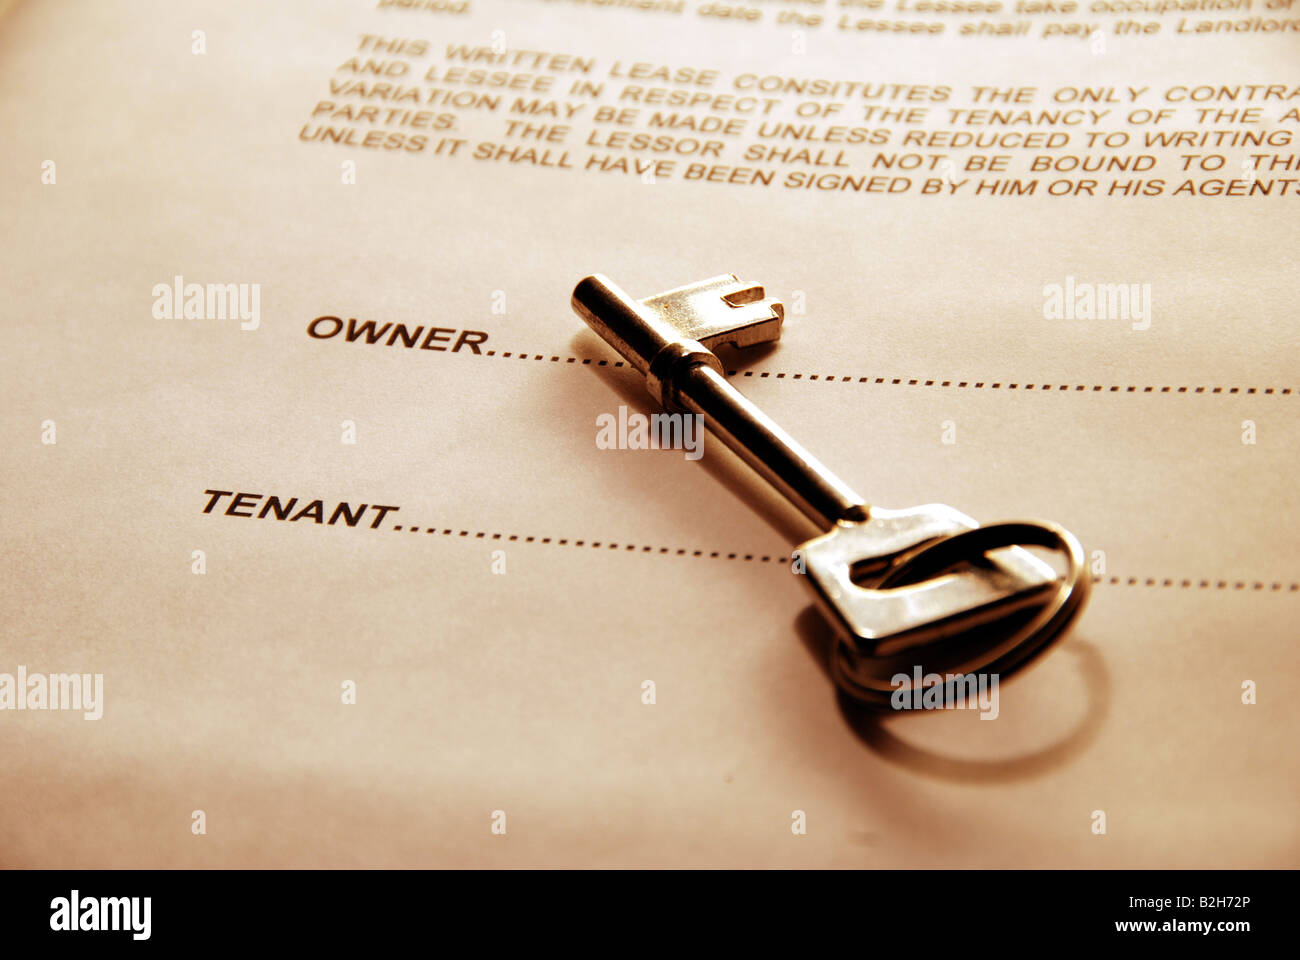 key resting on lease - Stock Image